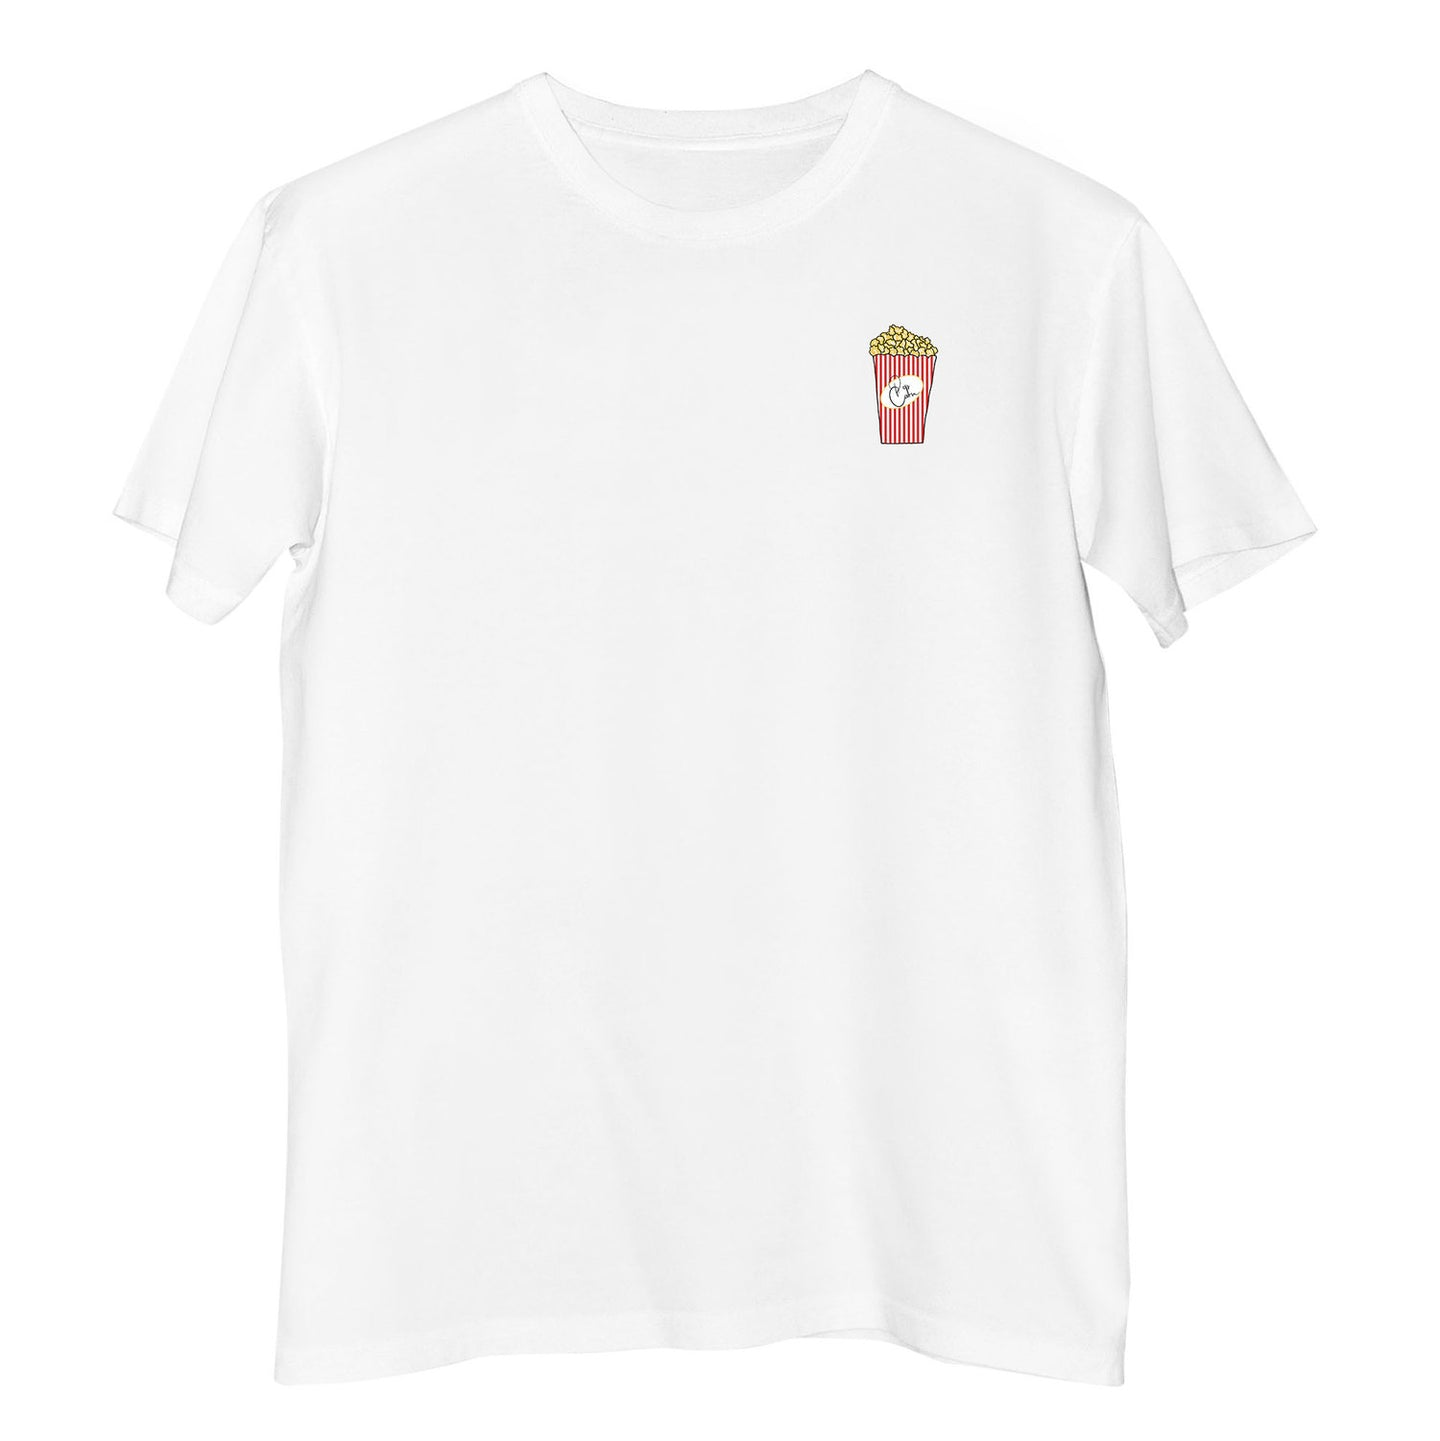 100% Organic Cotton T-shirt with pop corn by French Kiss Studio